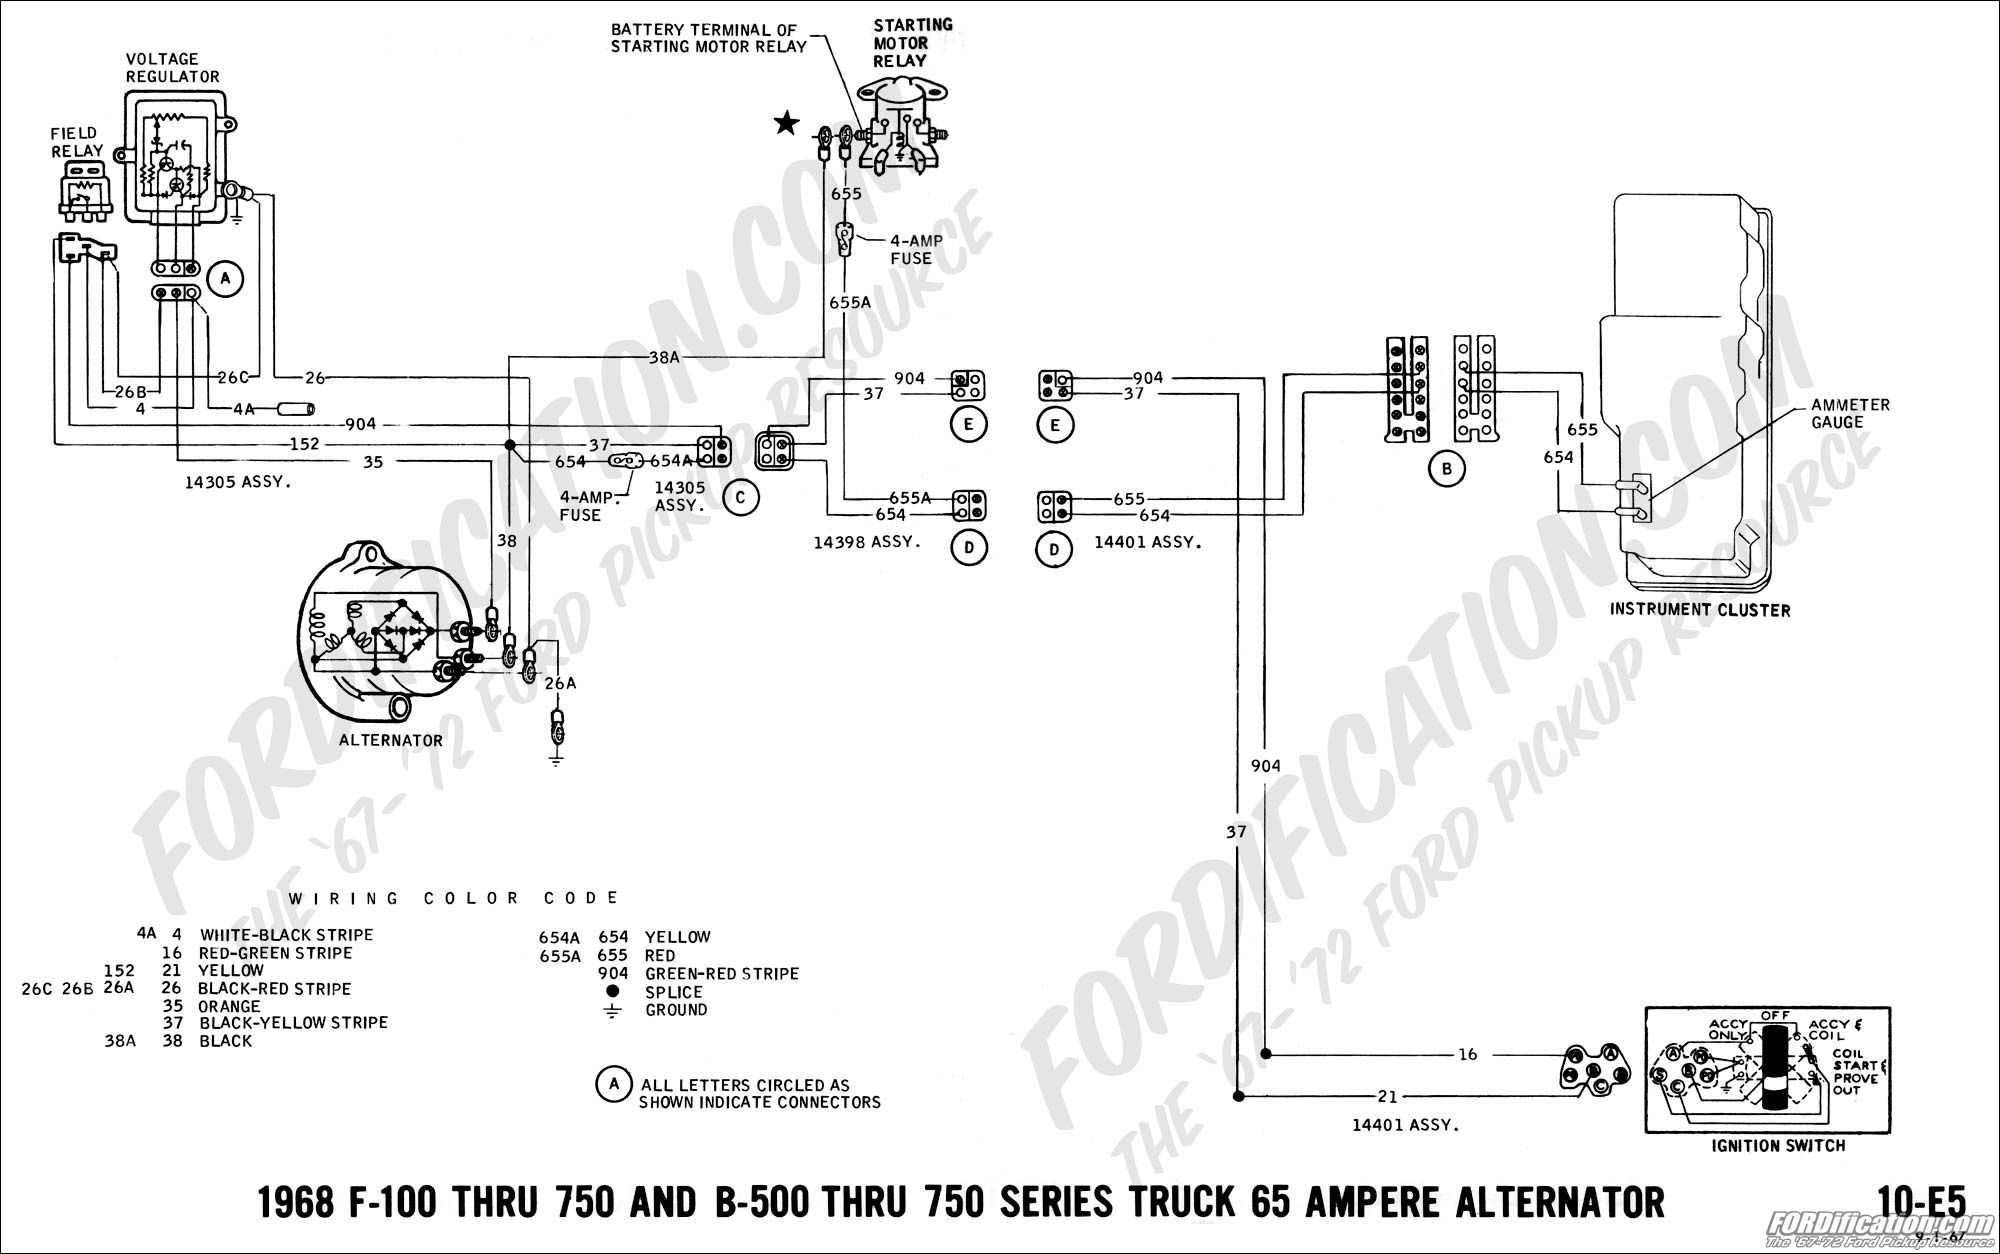 1968 f250 wiring diagrams wiring diagram schema blog68 ford alternator wiring diagram 76 ford f150 diagram, ford 1968 ford f250 wiring diagram 1968 f250 wiring diagrams